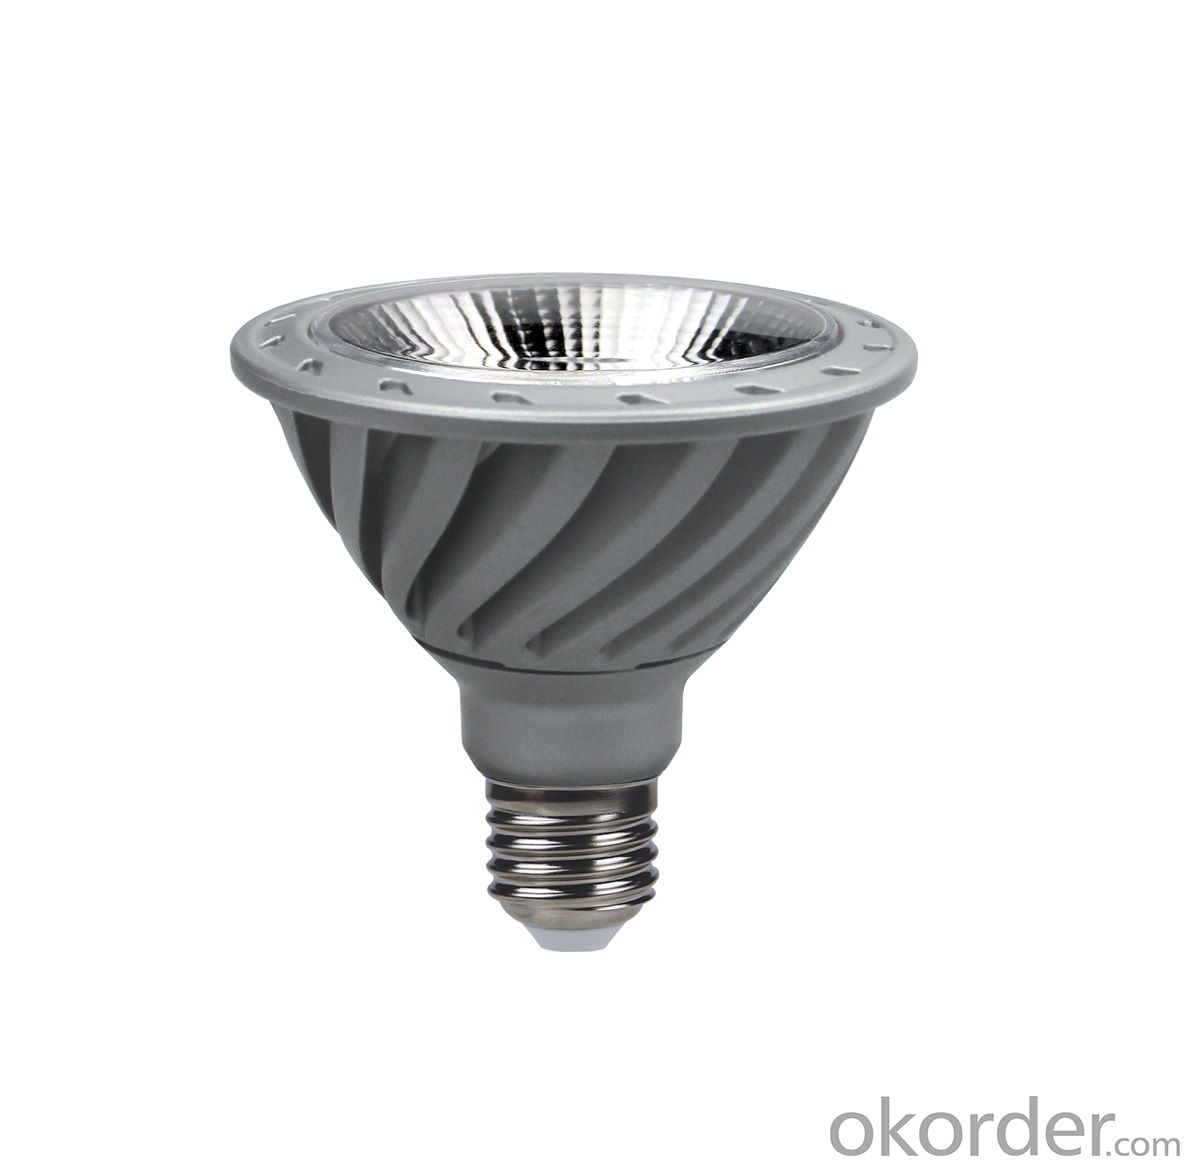 LED Par Light E27  3000k-4000K-5000K-6500k PAR 30 14W CRI 80  1200 Lumen